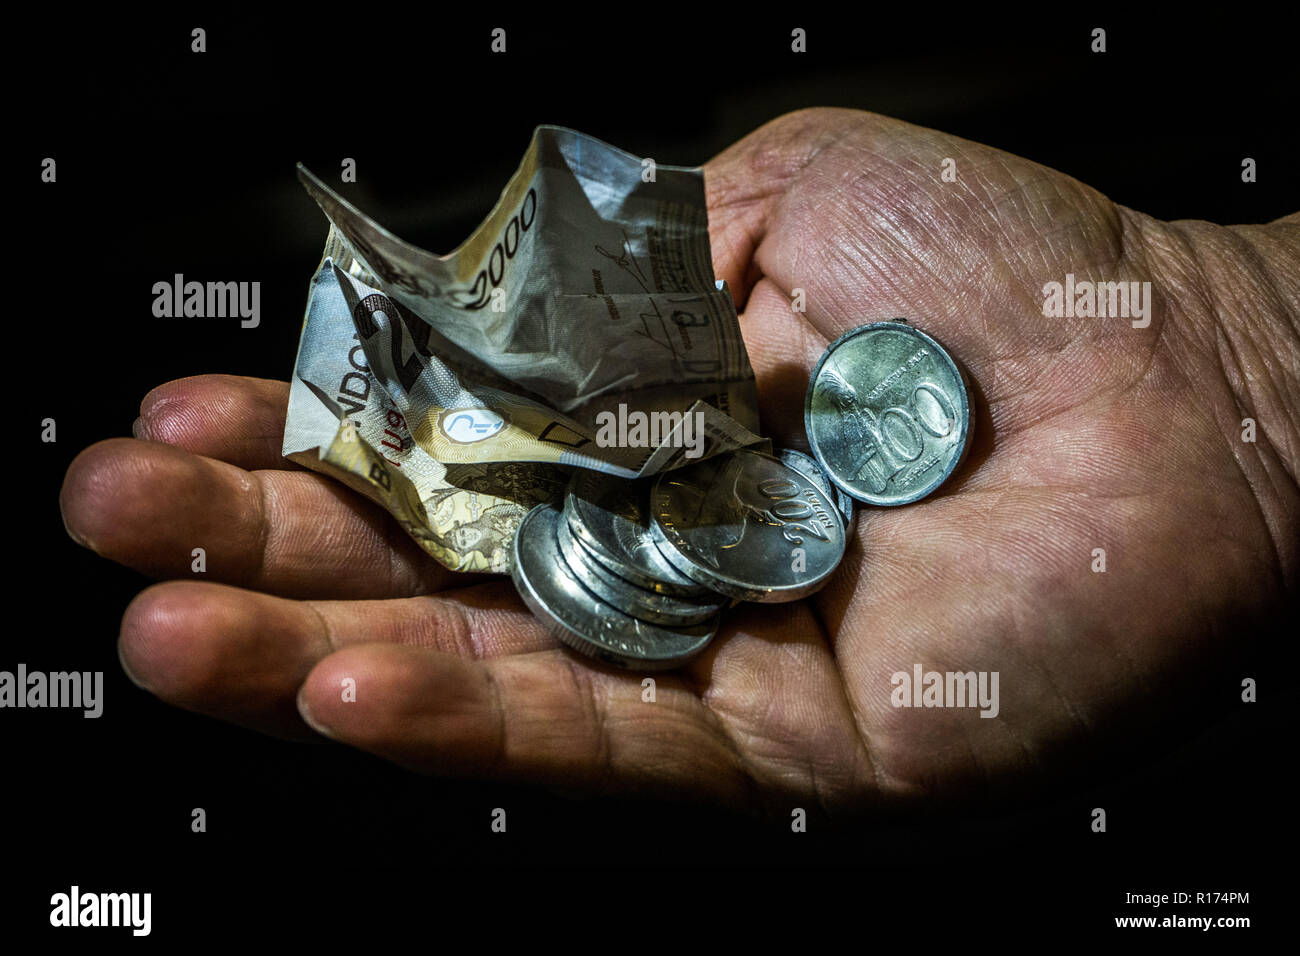 Indonesia rupiah small bill and coins in the hand of an asian person isolated. Concept of begging for leaving, poor person. Stock Photo